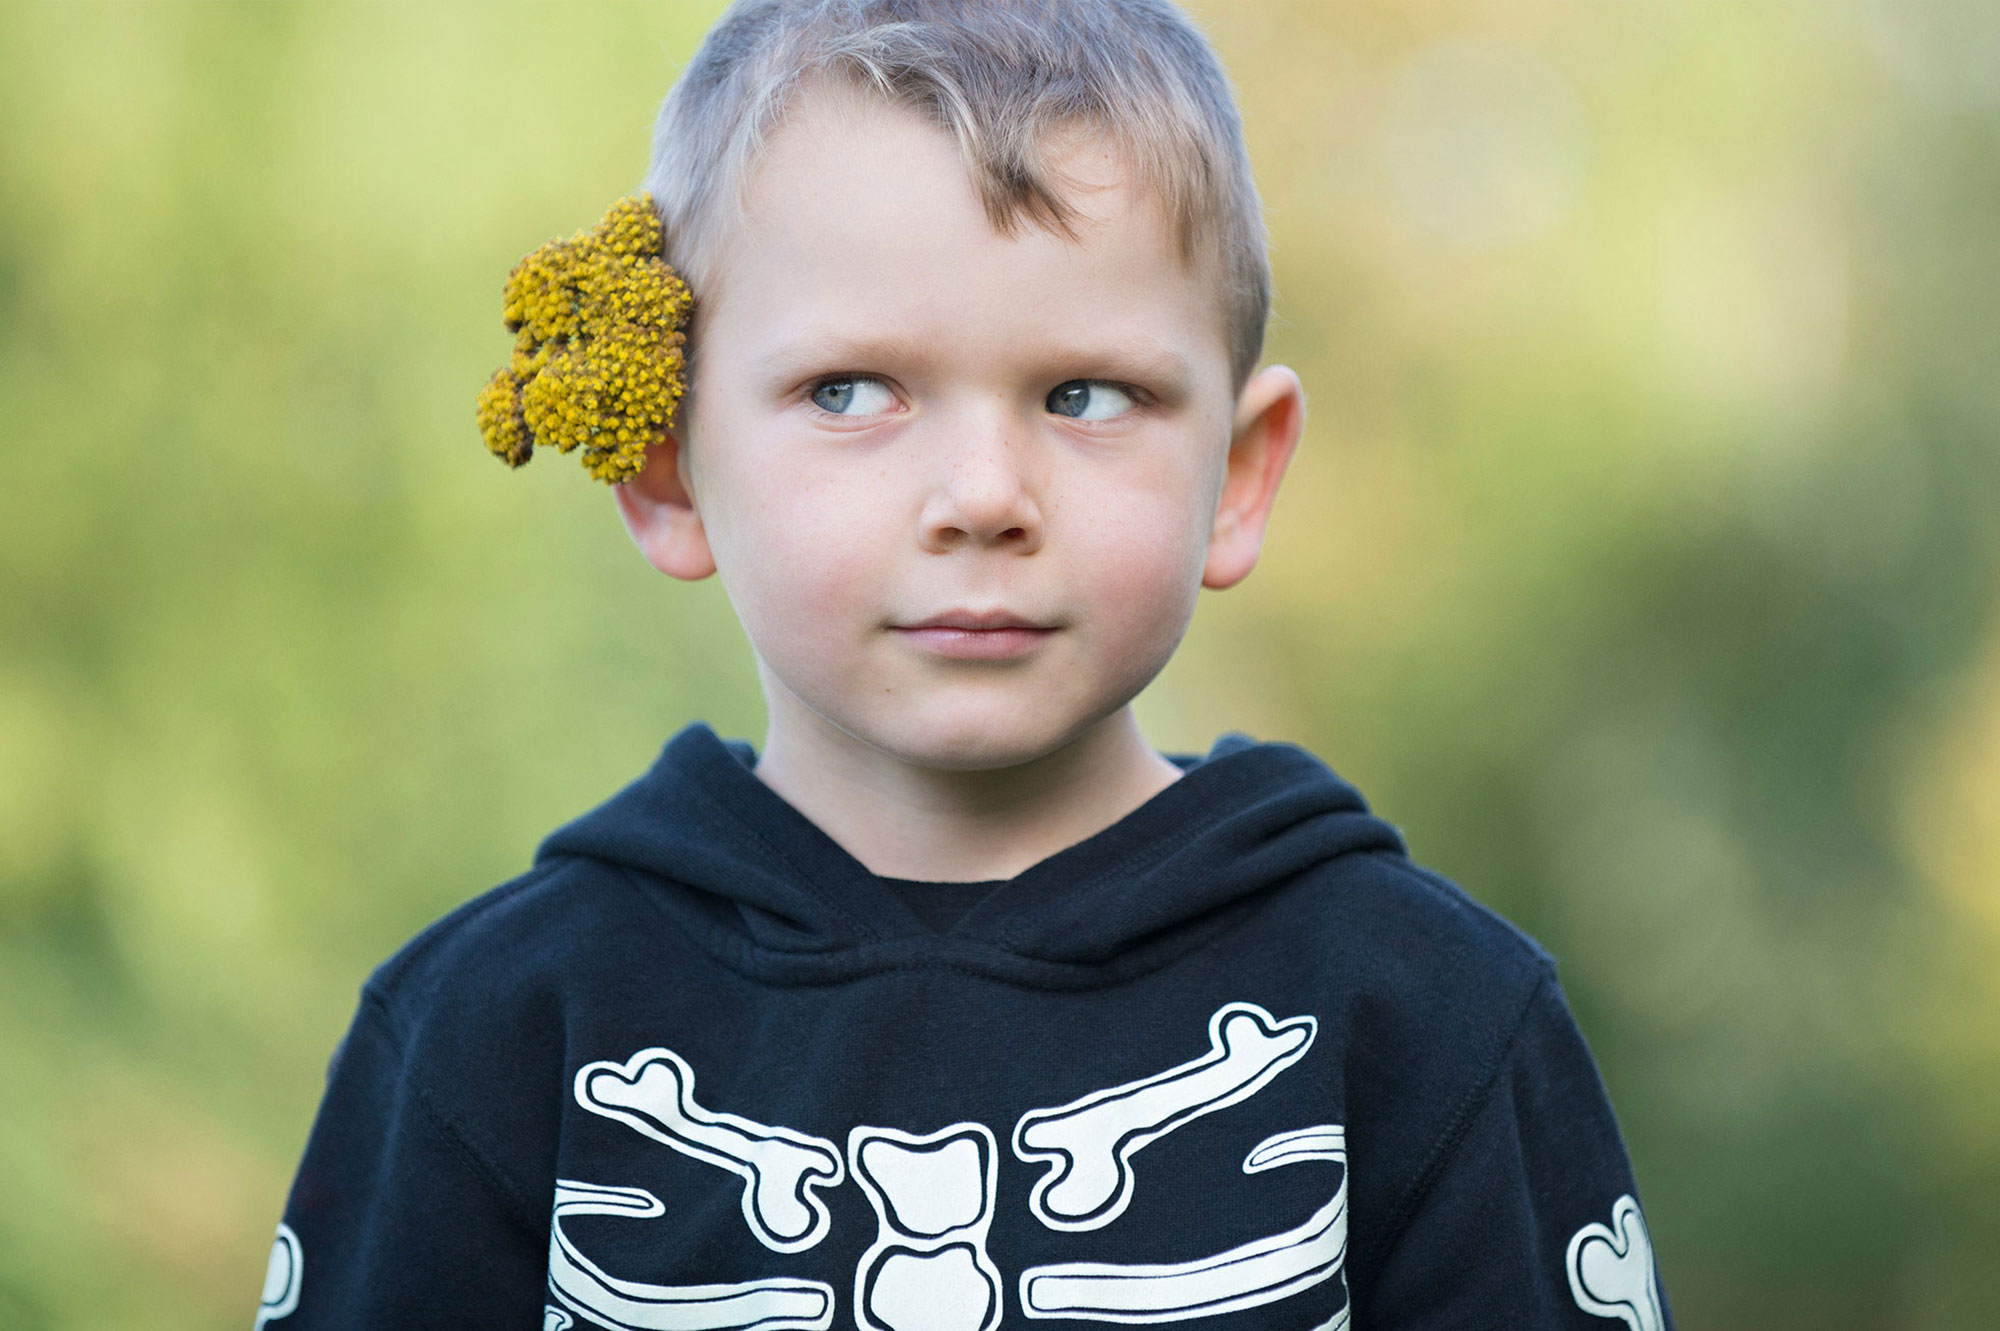 Children's Photography. Child's sense of humor captured during Seattle's Autumn time